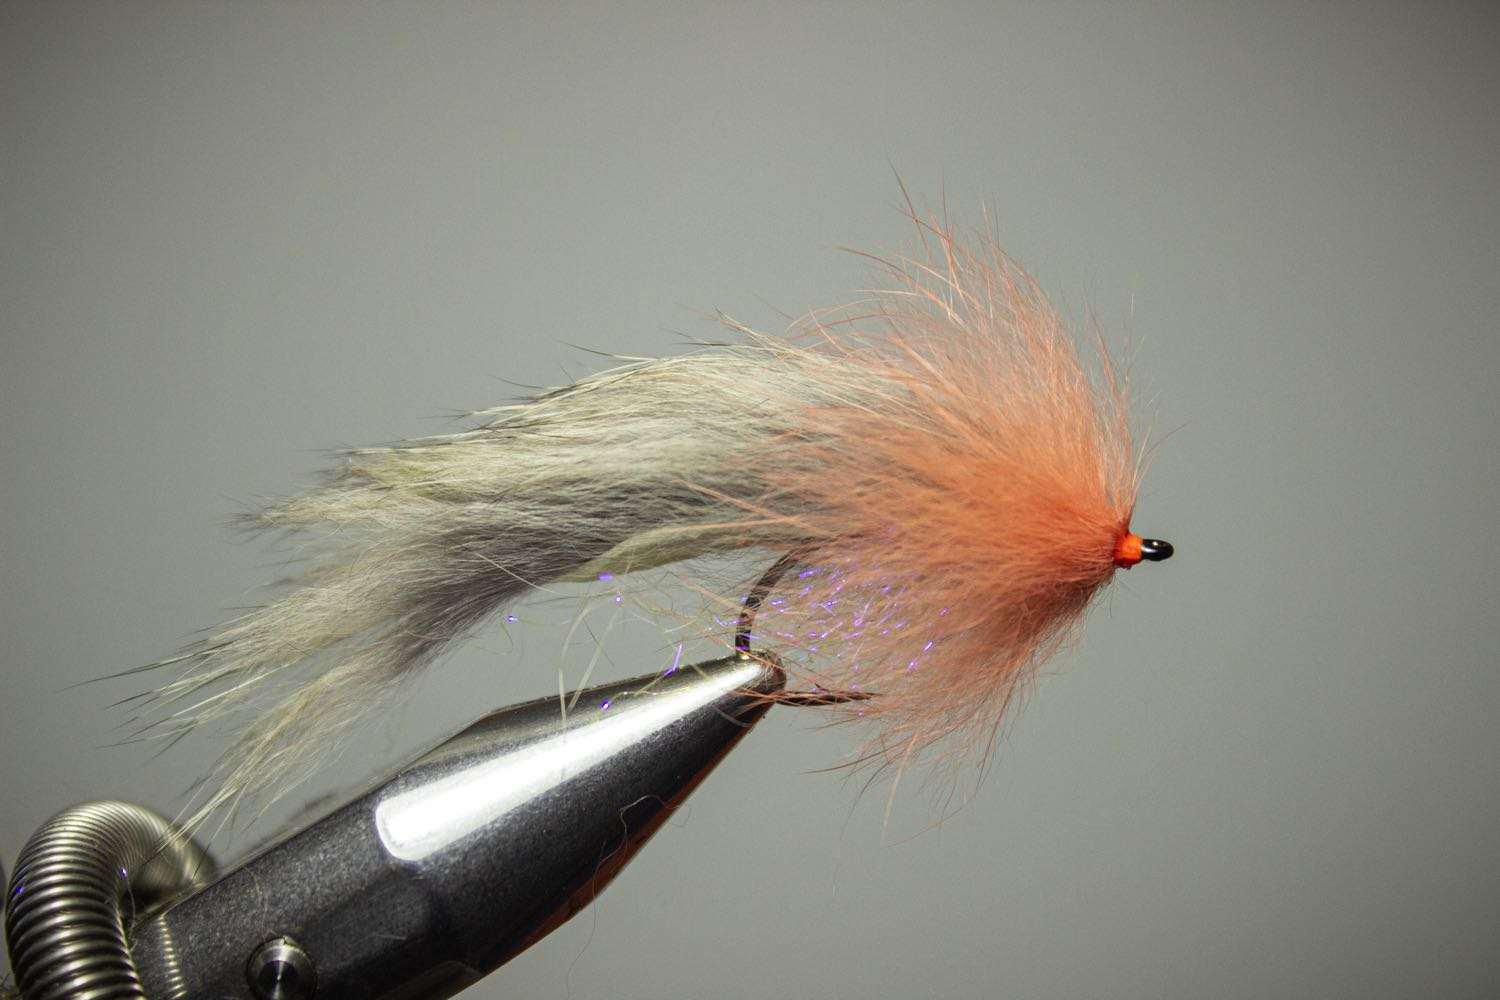 How To Tie a Bunny Leech Tutorial With Video